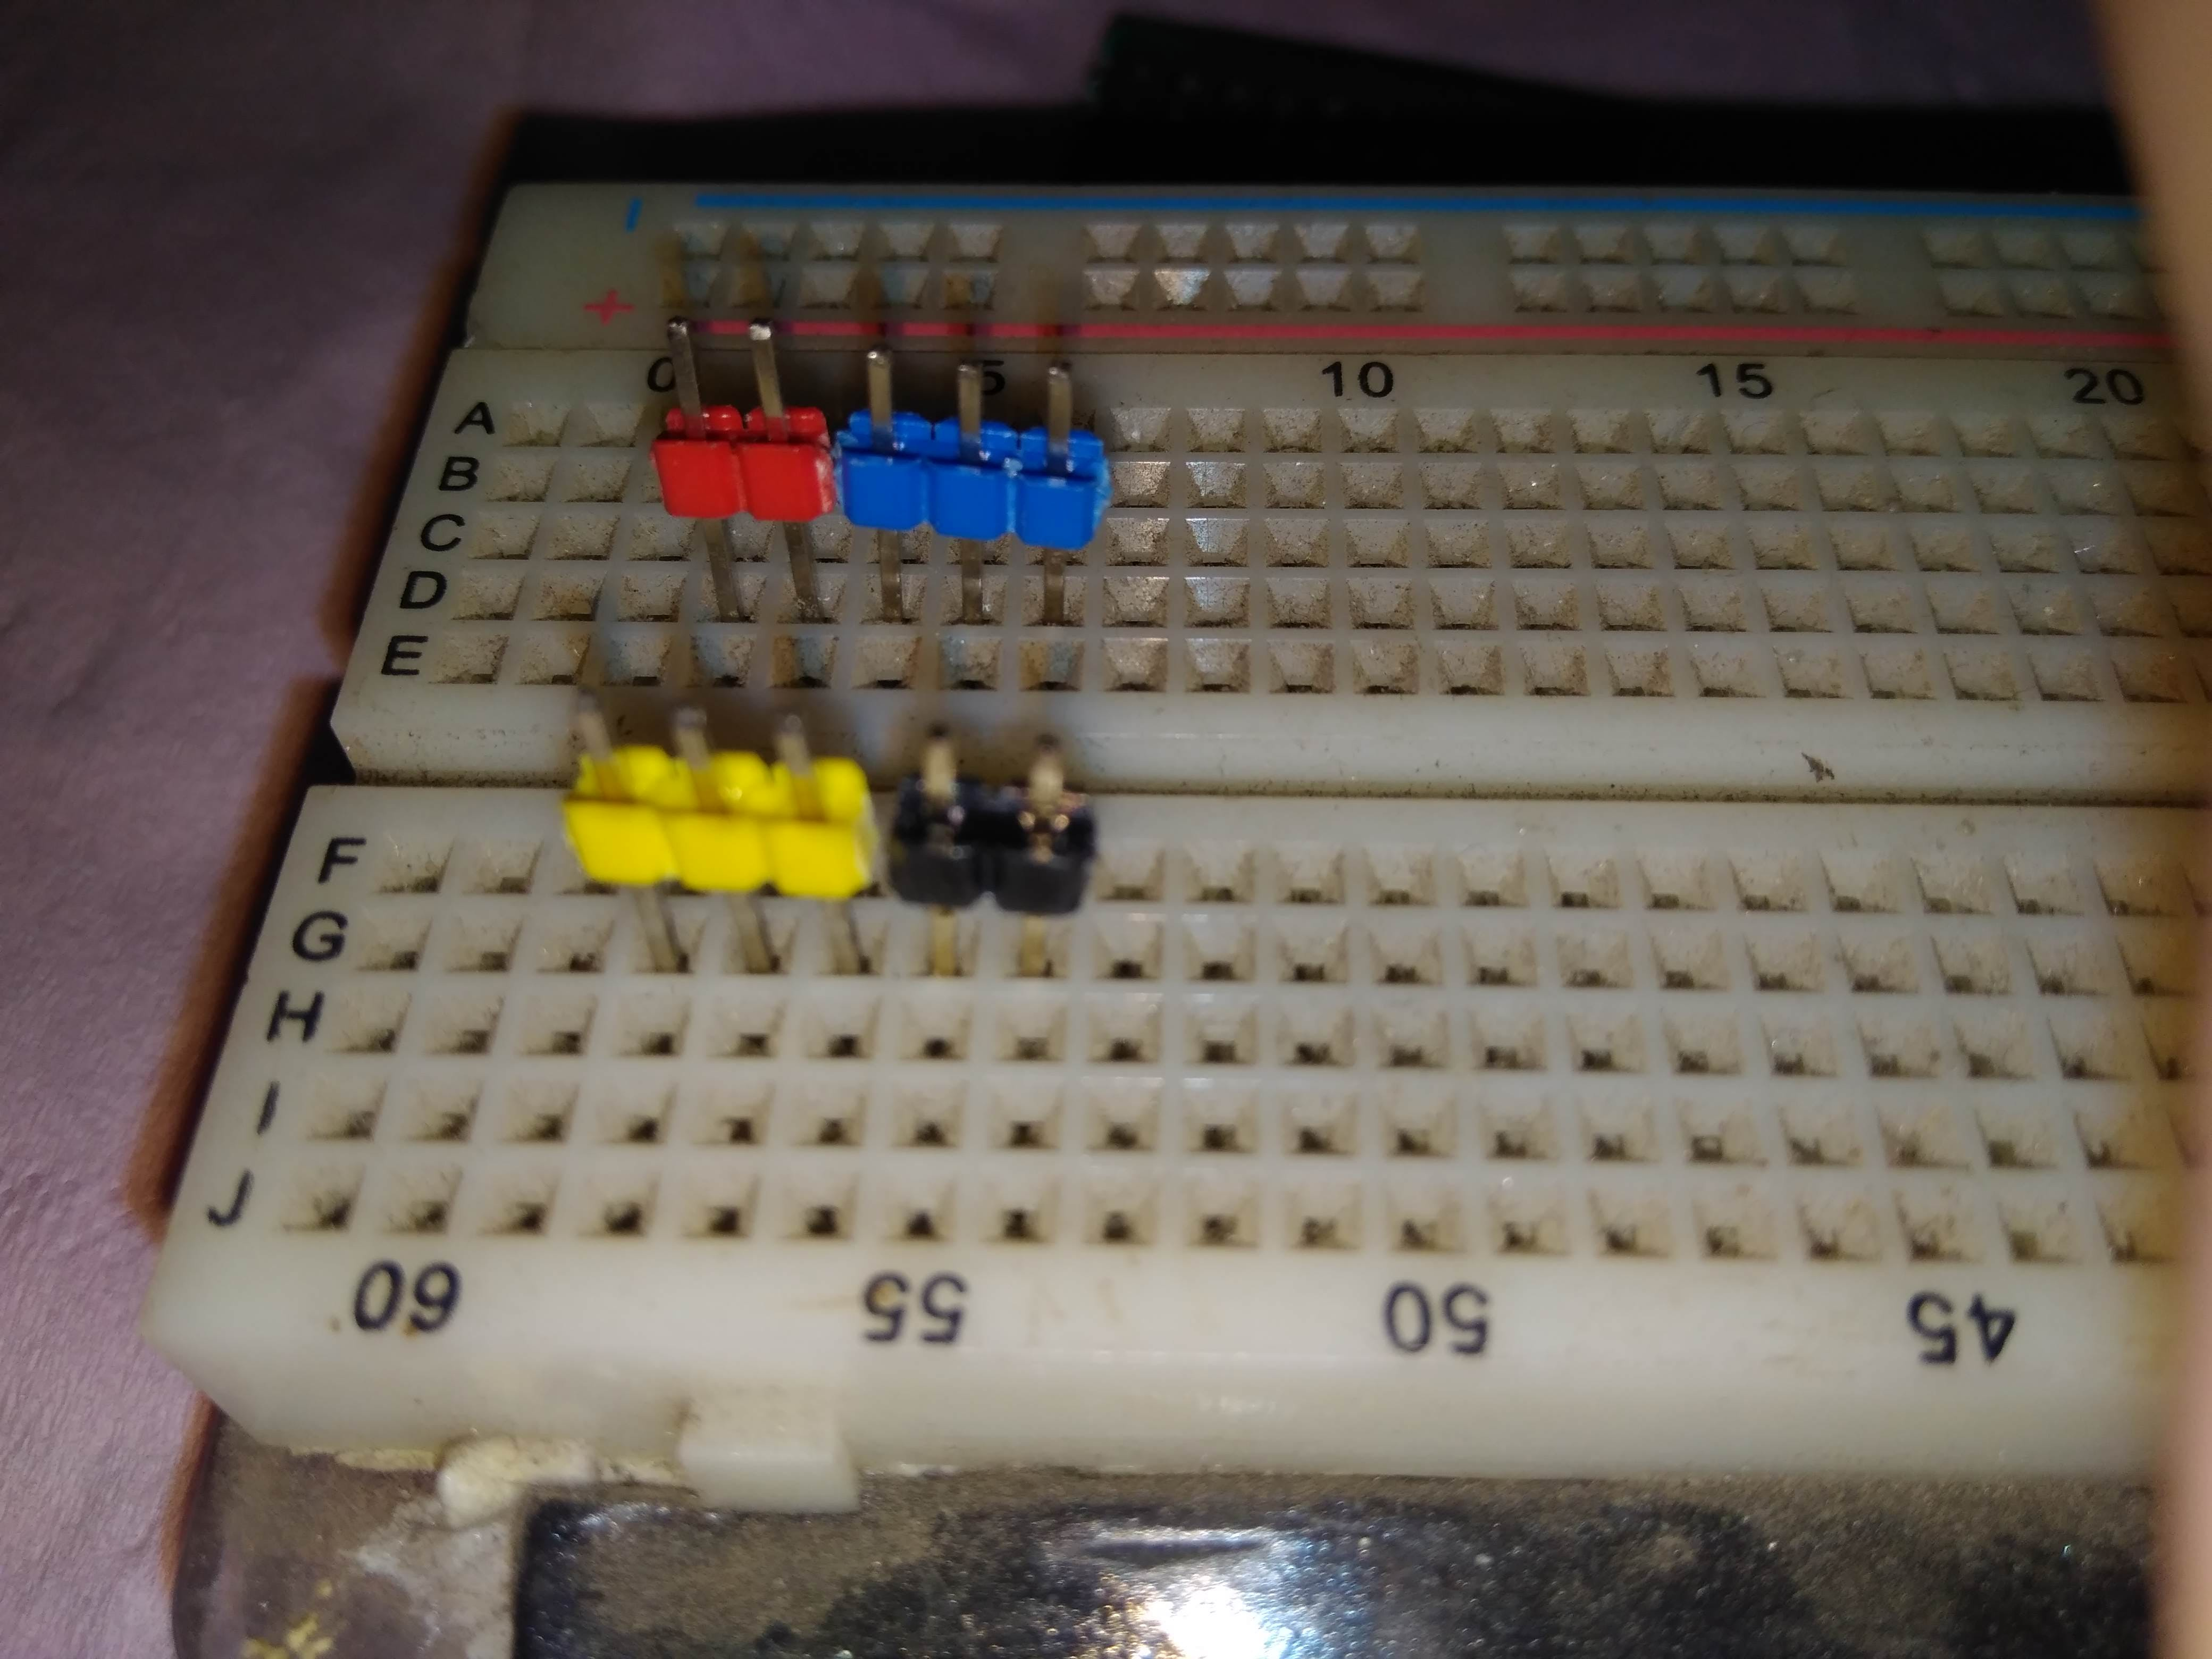 Using breadboard for alignment before soldering